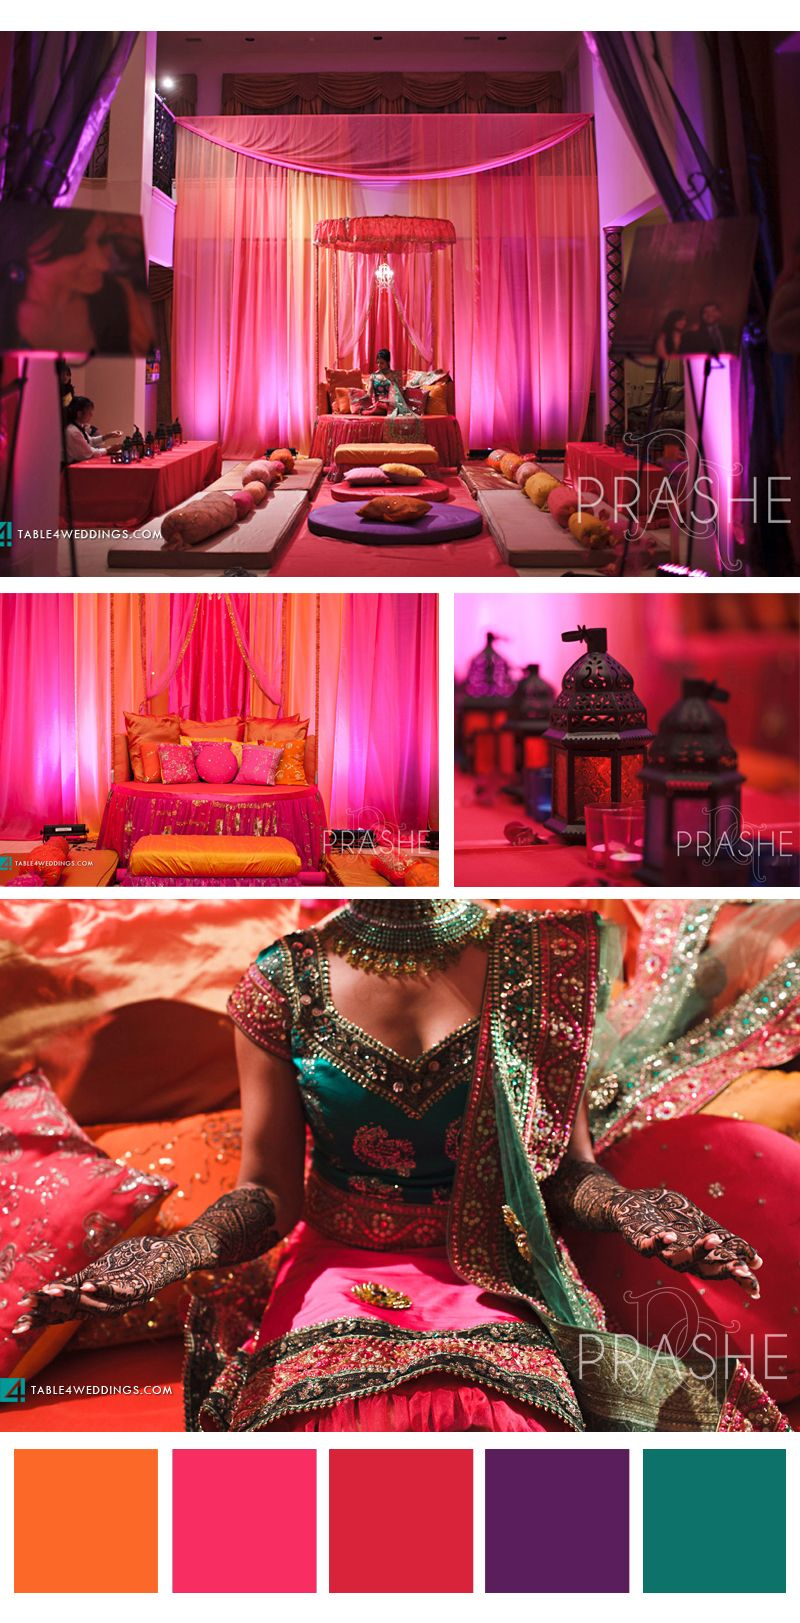 Henna Party Rates : Professionalimage for event photography rates info